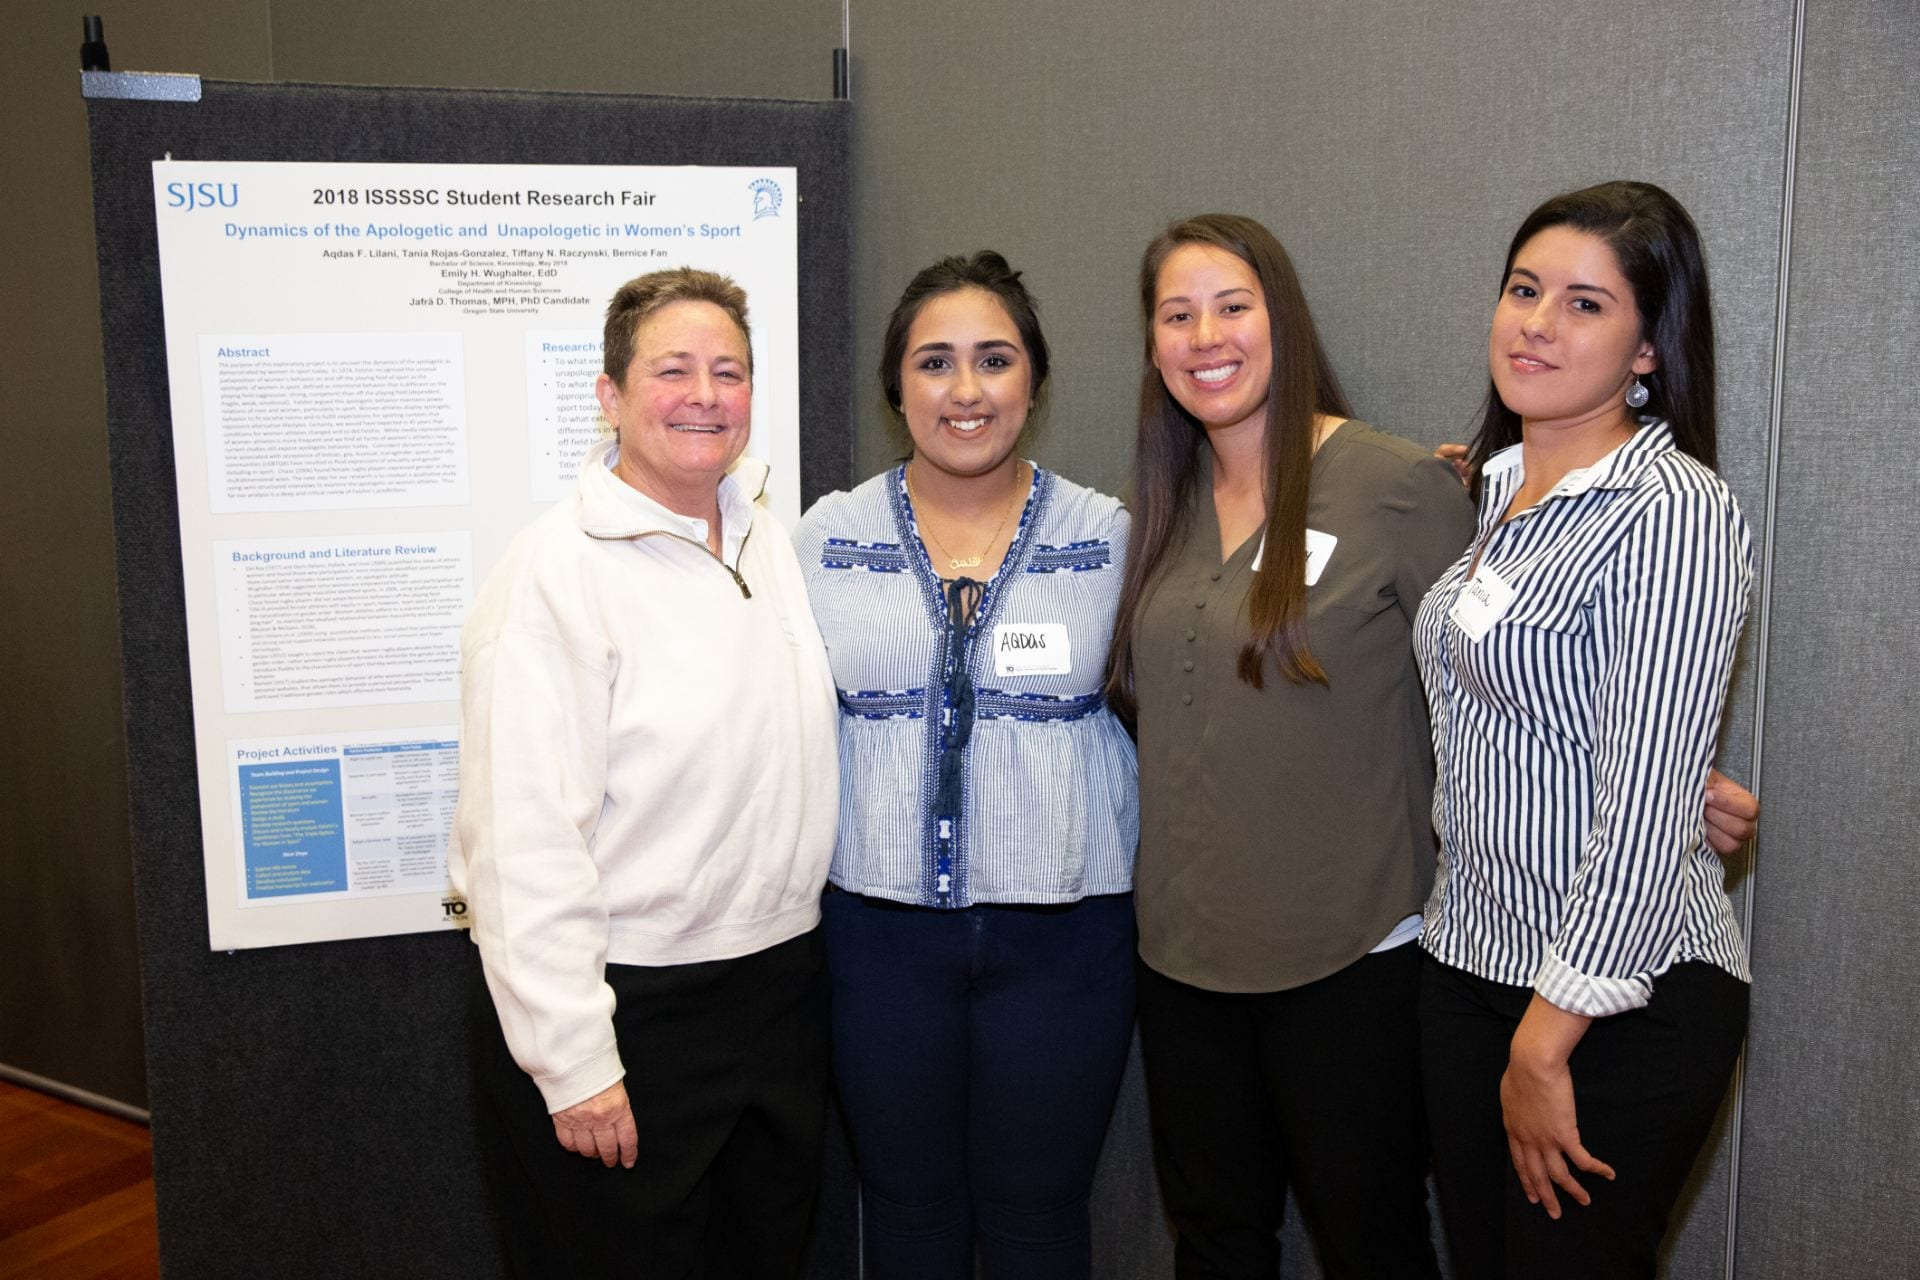 Professor Emily Wughalter, Aqdas Lilani, Tiffany Raczynski and Tania Rojas pose for a photo at the Institute for the Study of Sport, Society and Social Change Student Research Fair in 2018. Photo by David Schmitz